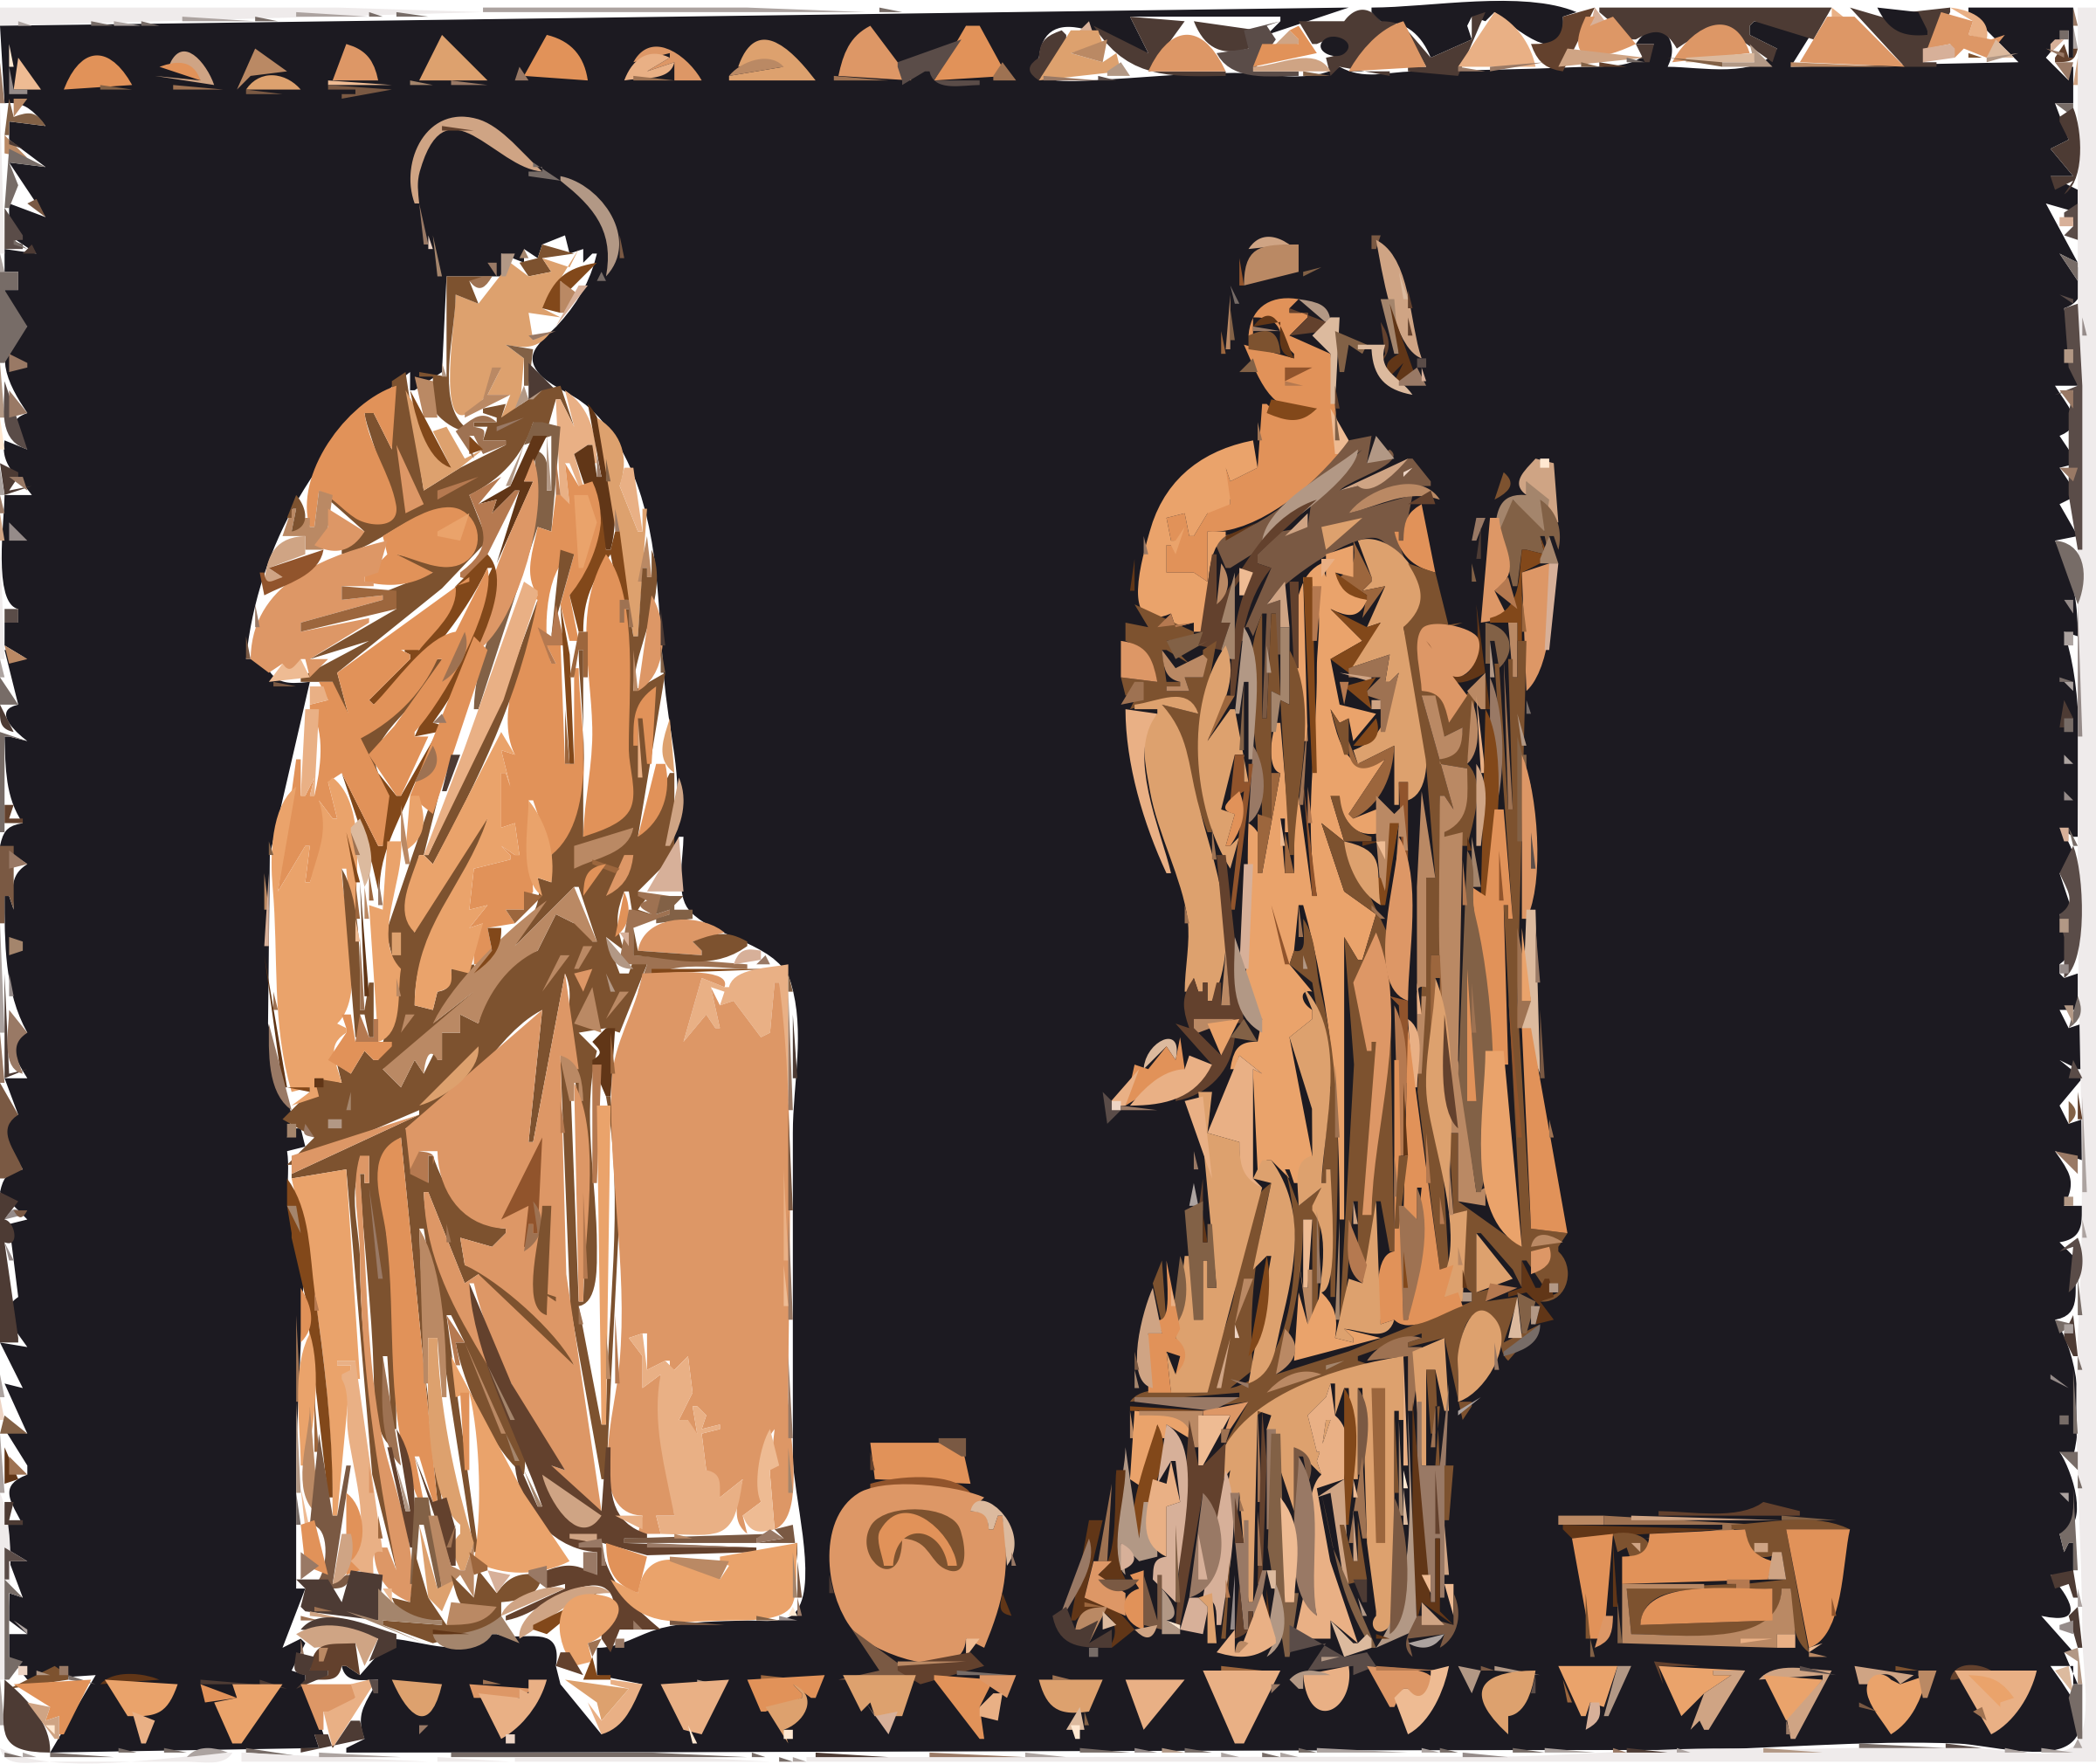 Athenian women by Thunder10099